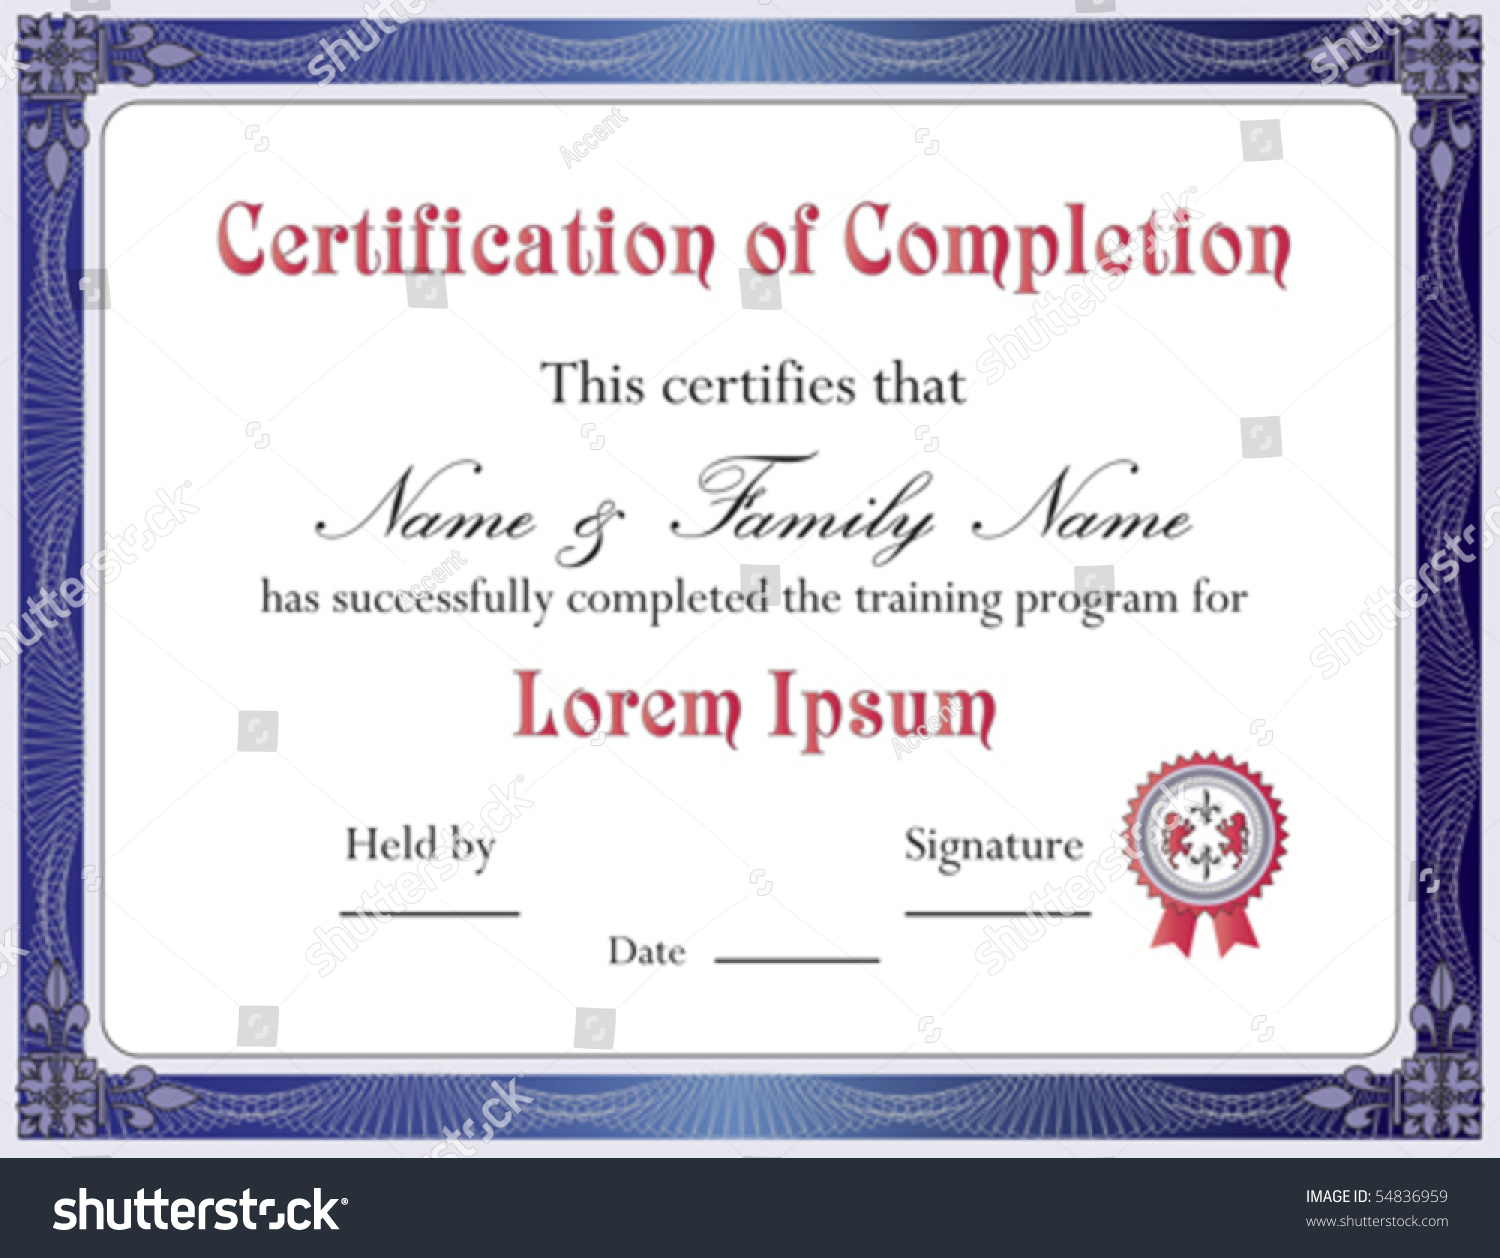 Certificate completion template vector format stock vector certificate of completion template vector format 1betcityfo Image collections